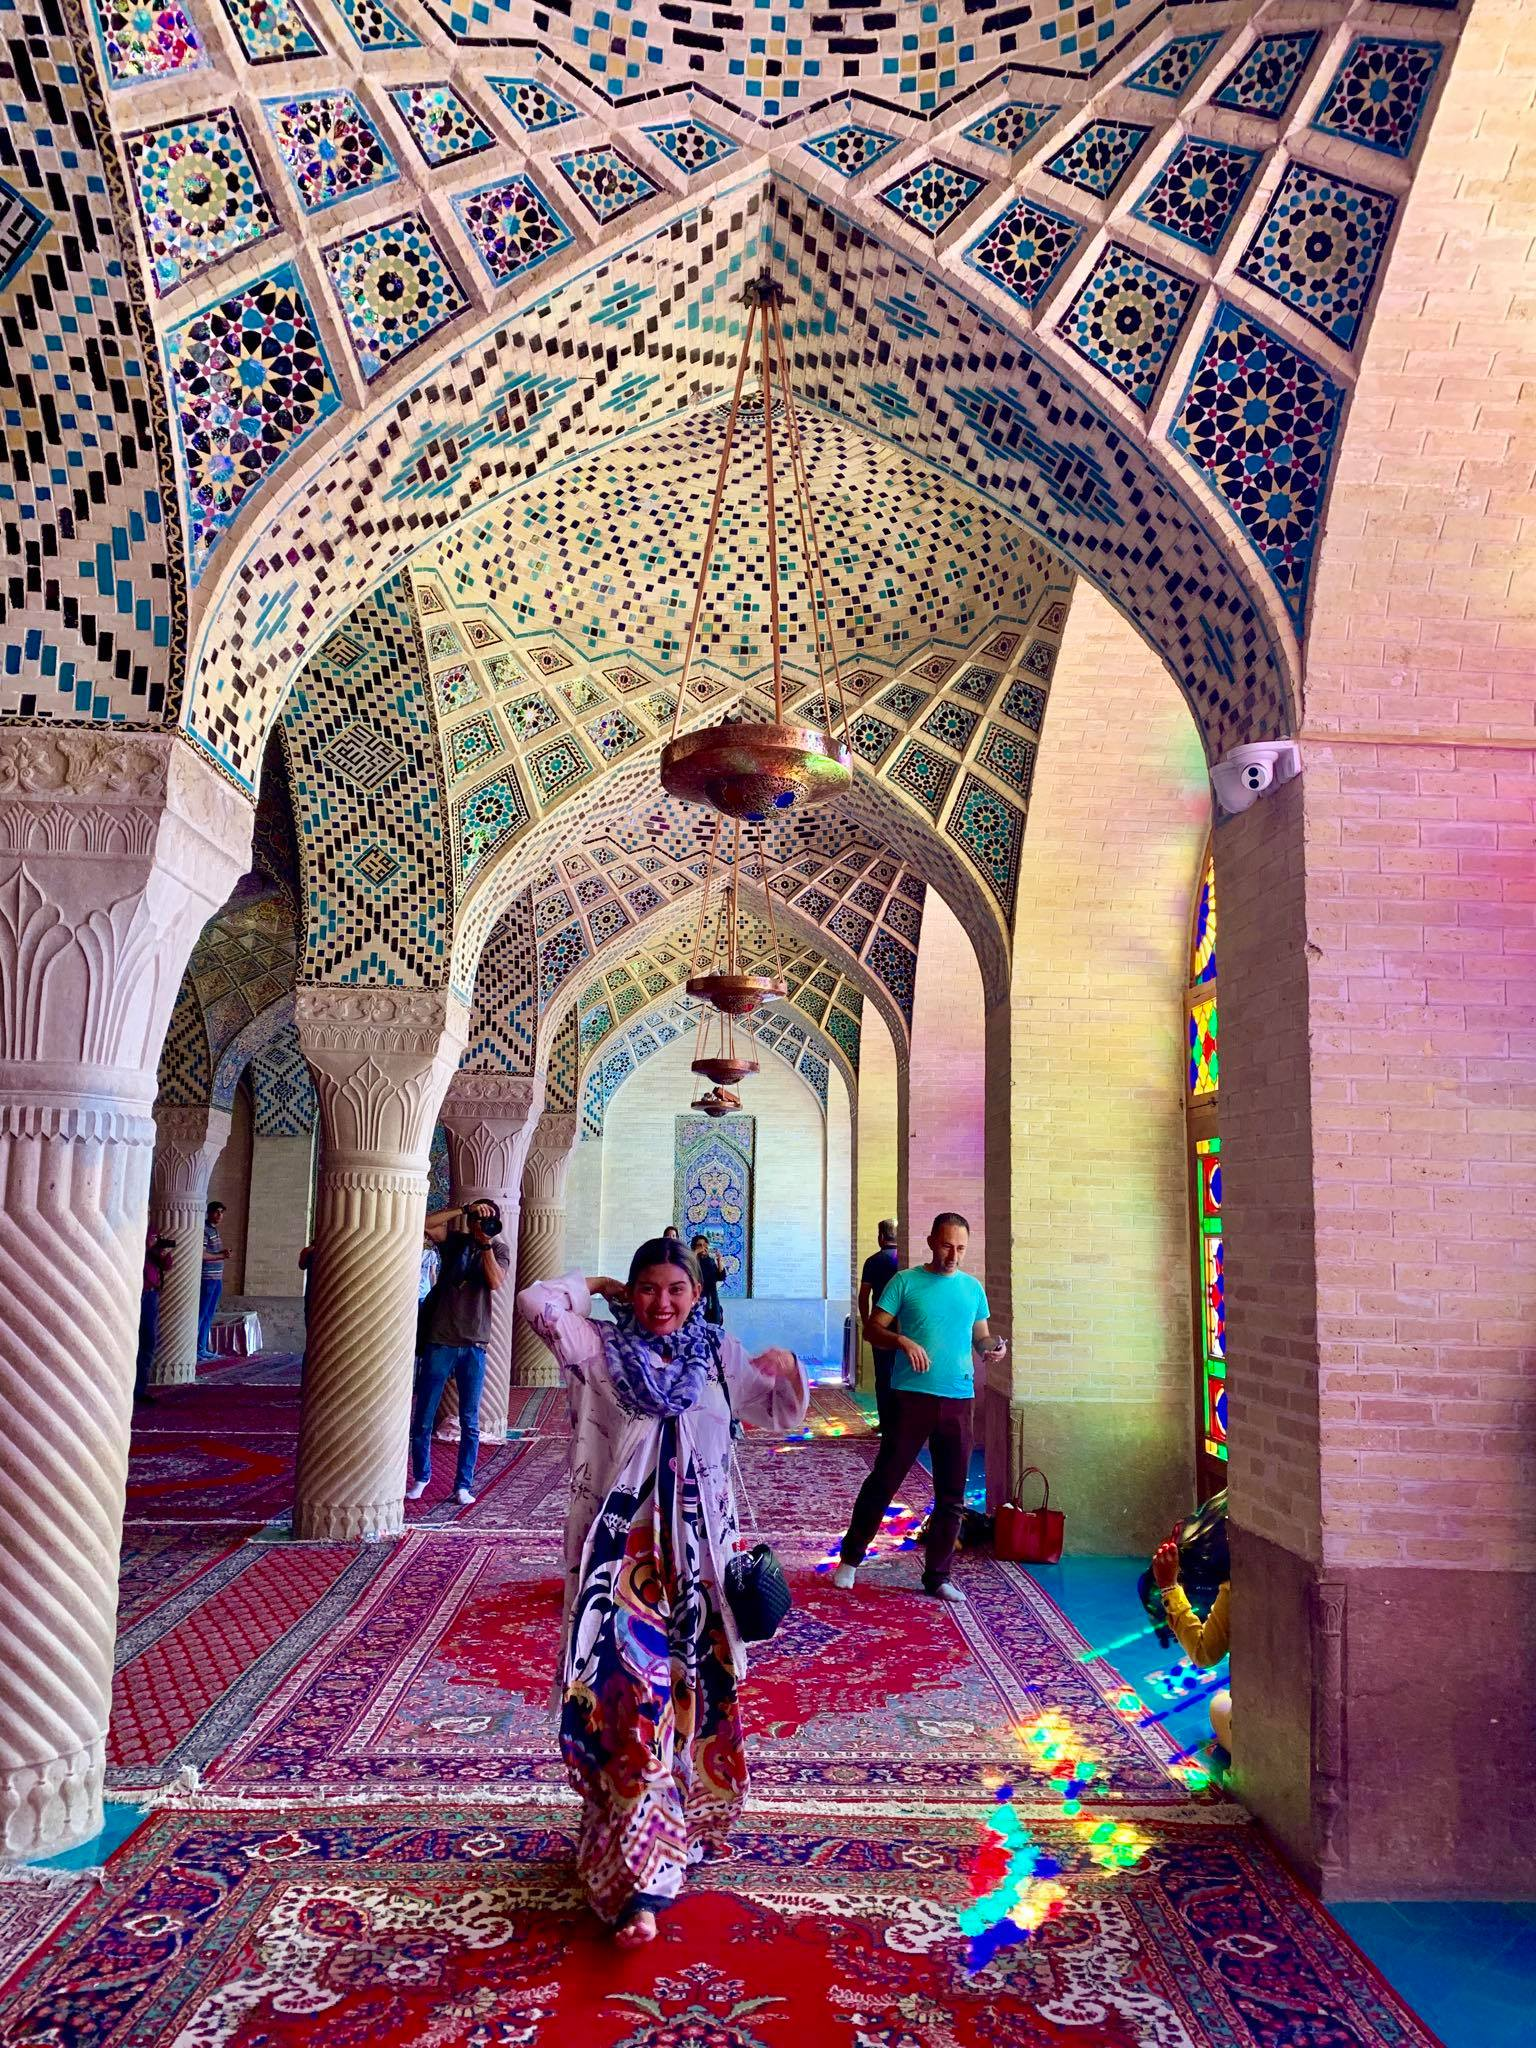 Kach Solo Travels in 2019 Full day tour of Shiraz47.jpg